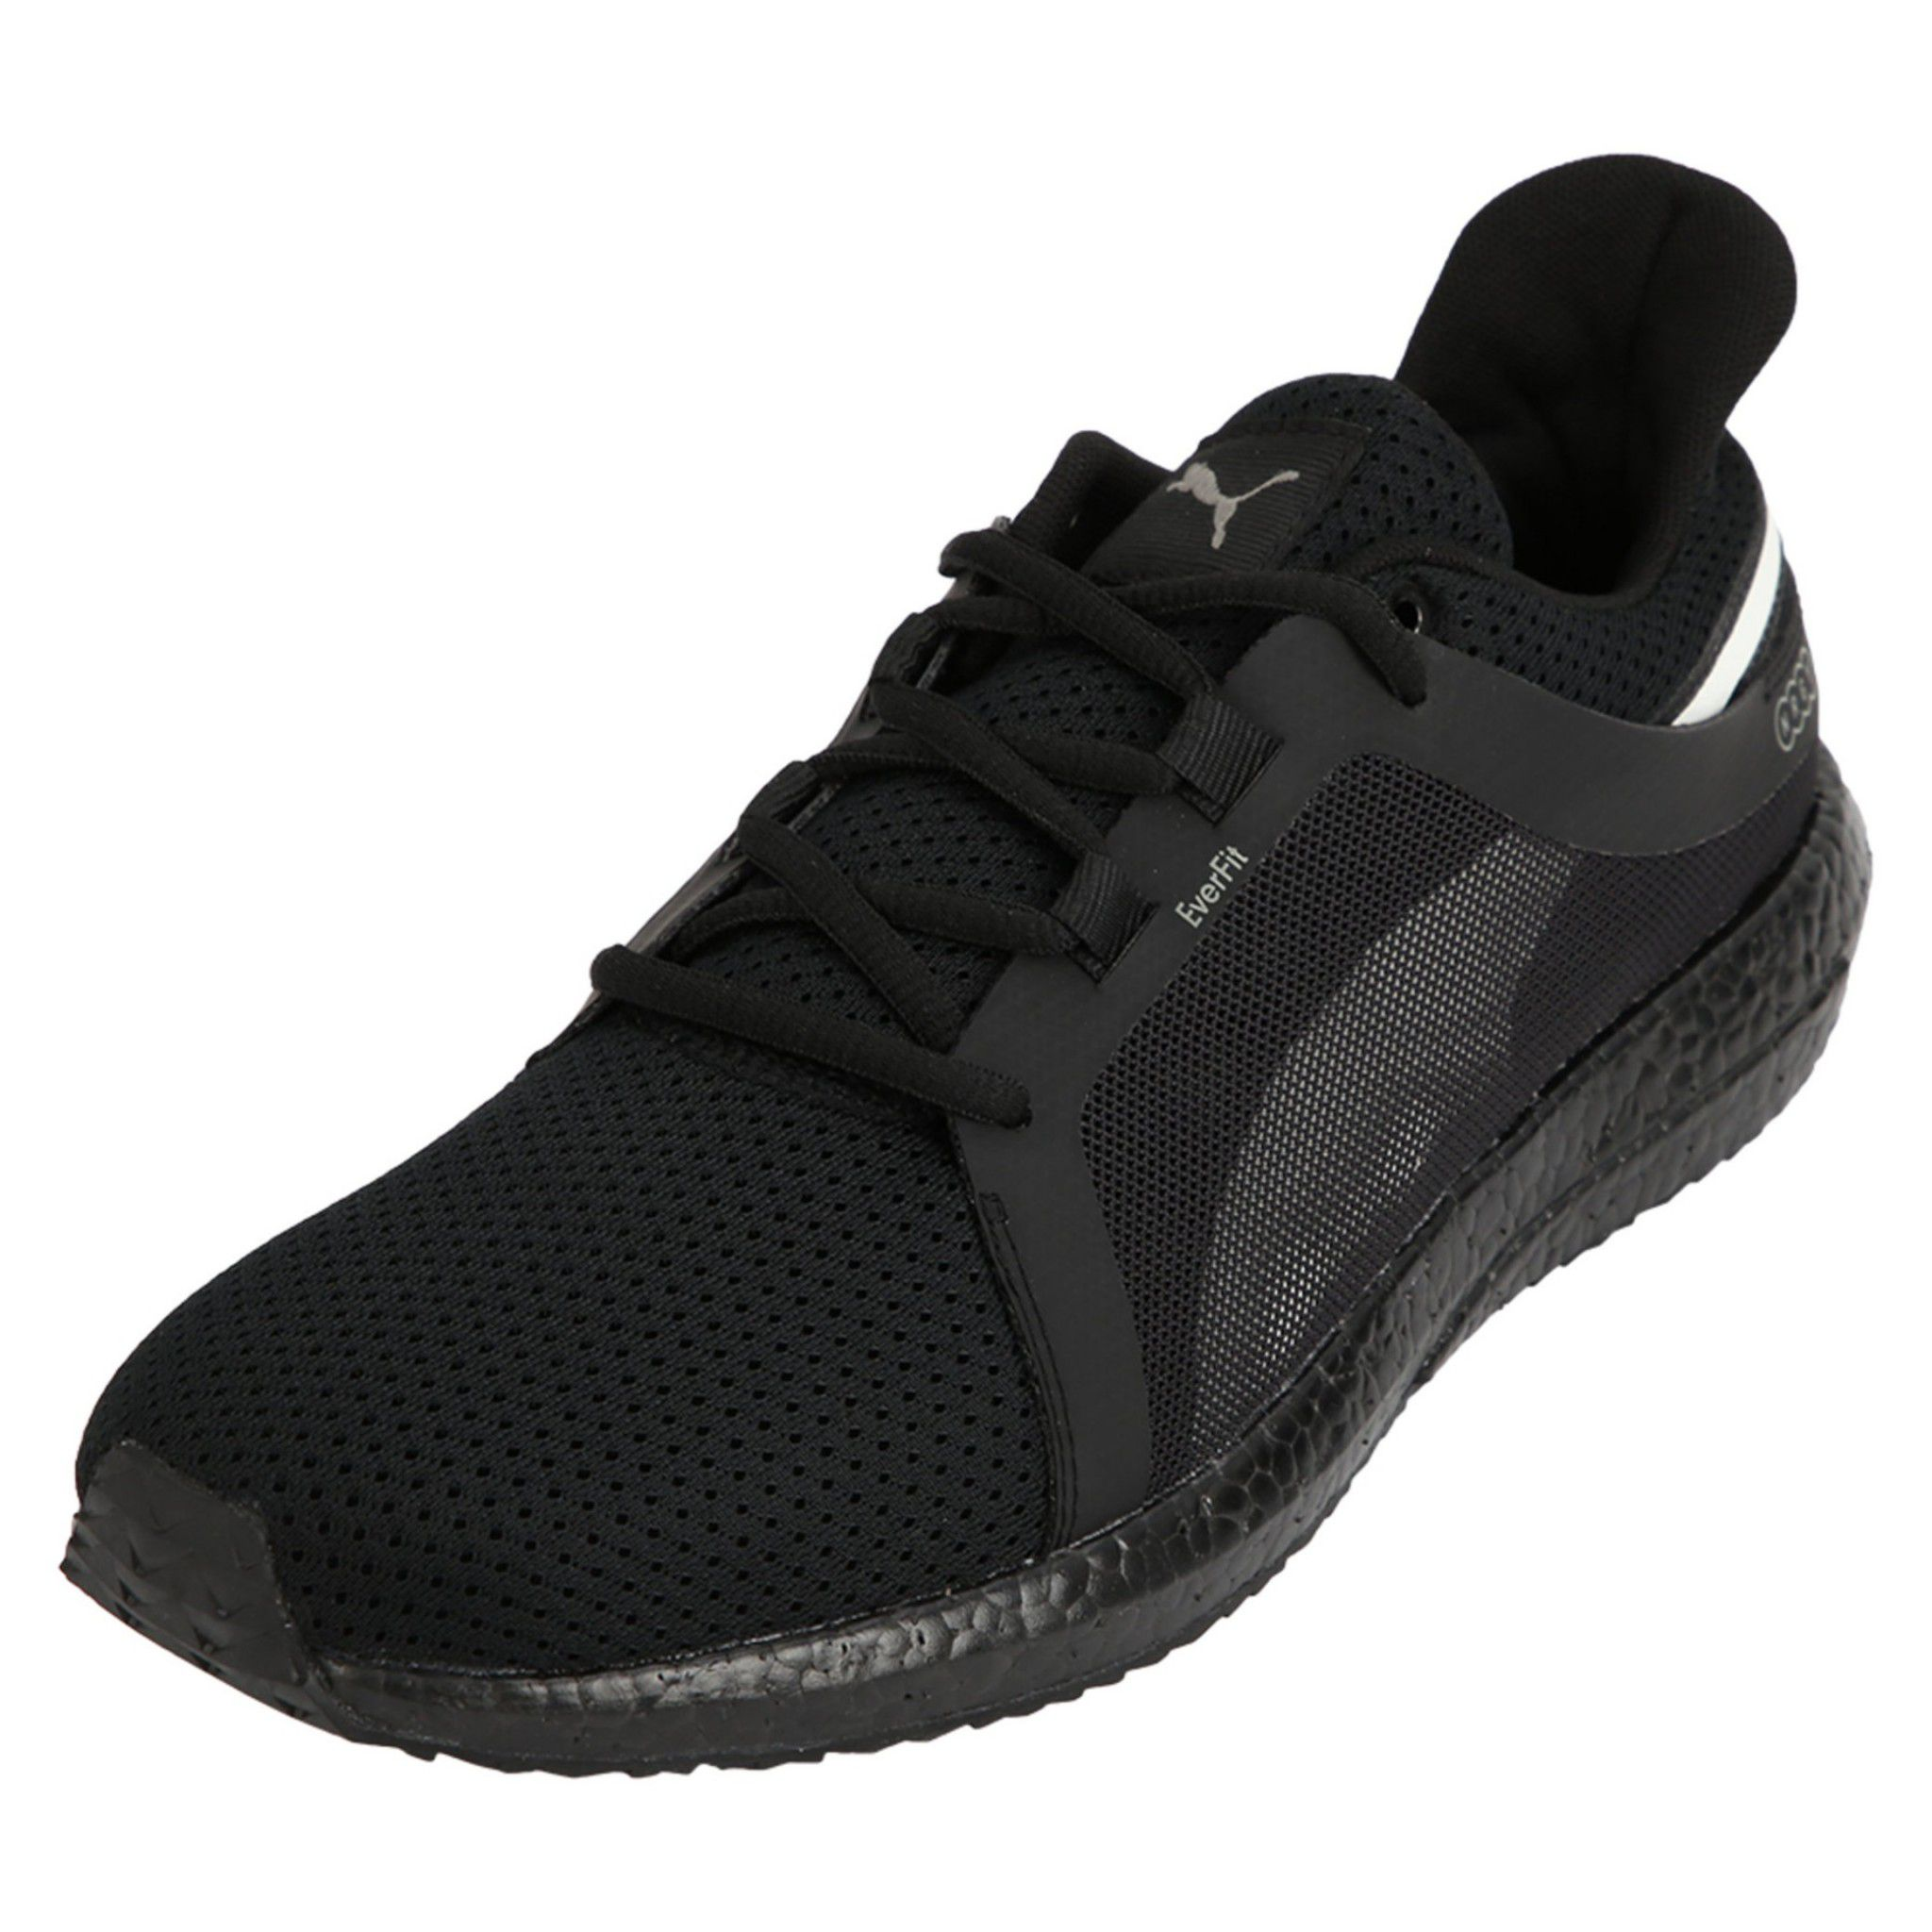 a1e8c487048650 Puma Mega NRGY Turbo 2 Black Running Shoes - Buy Puma Mega NRGY Turbo 2  Black Running Shoes Online at Best Prices in India on Snapdeal